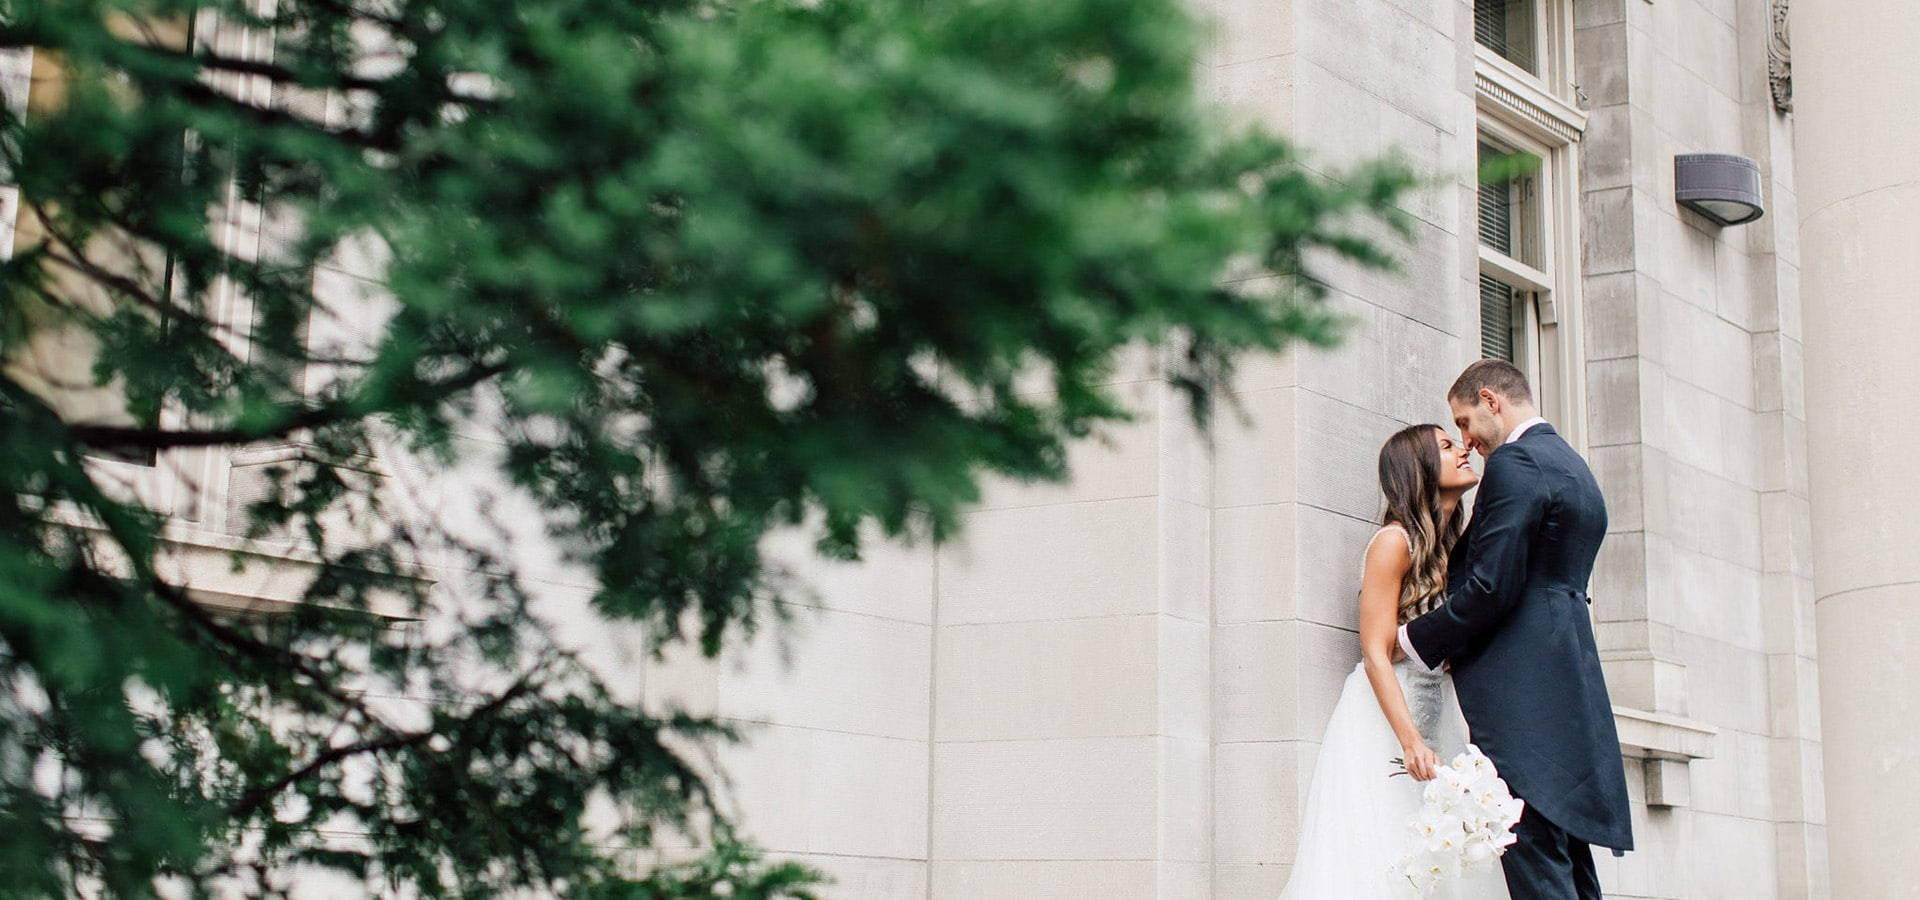 Hero image for Amanda and Adam's Luxurious Wedding at the Four Seasons Hotel